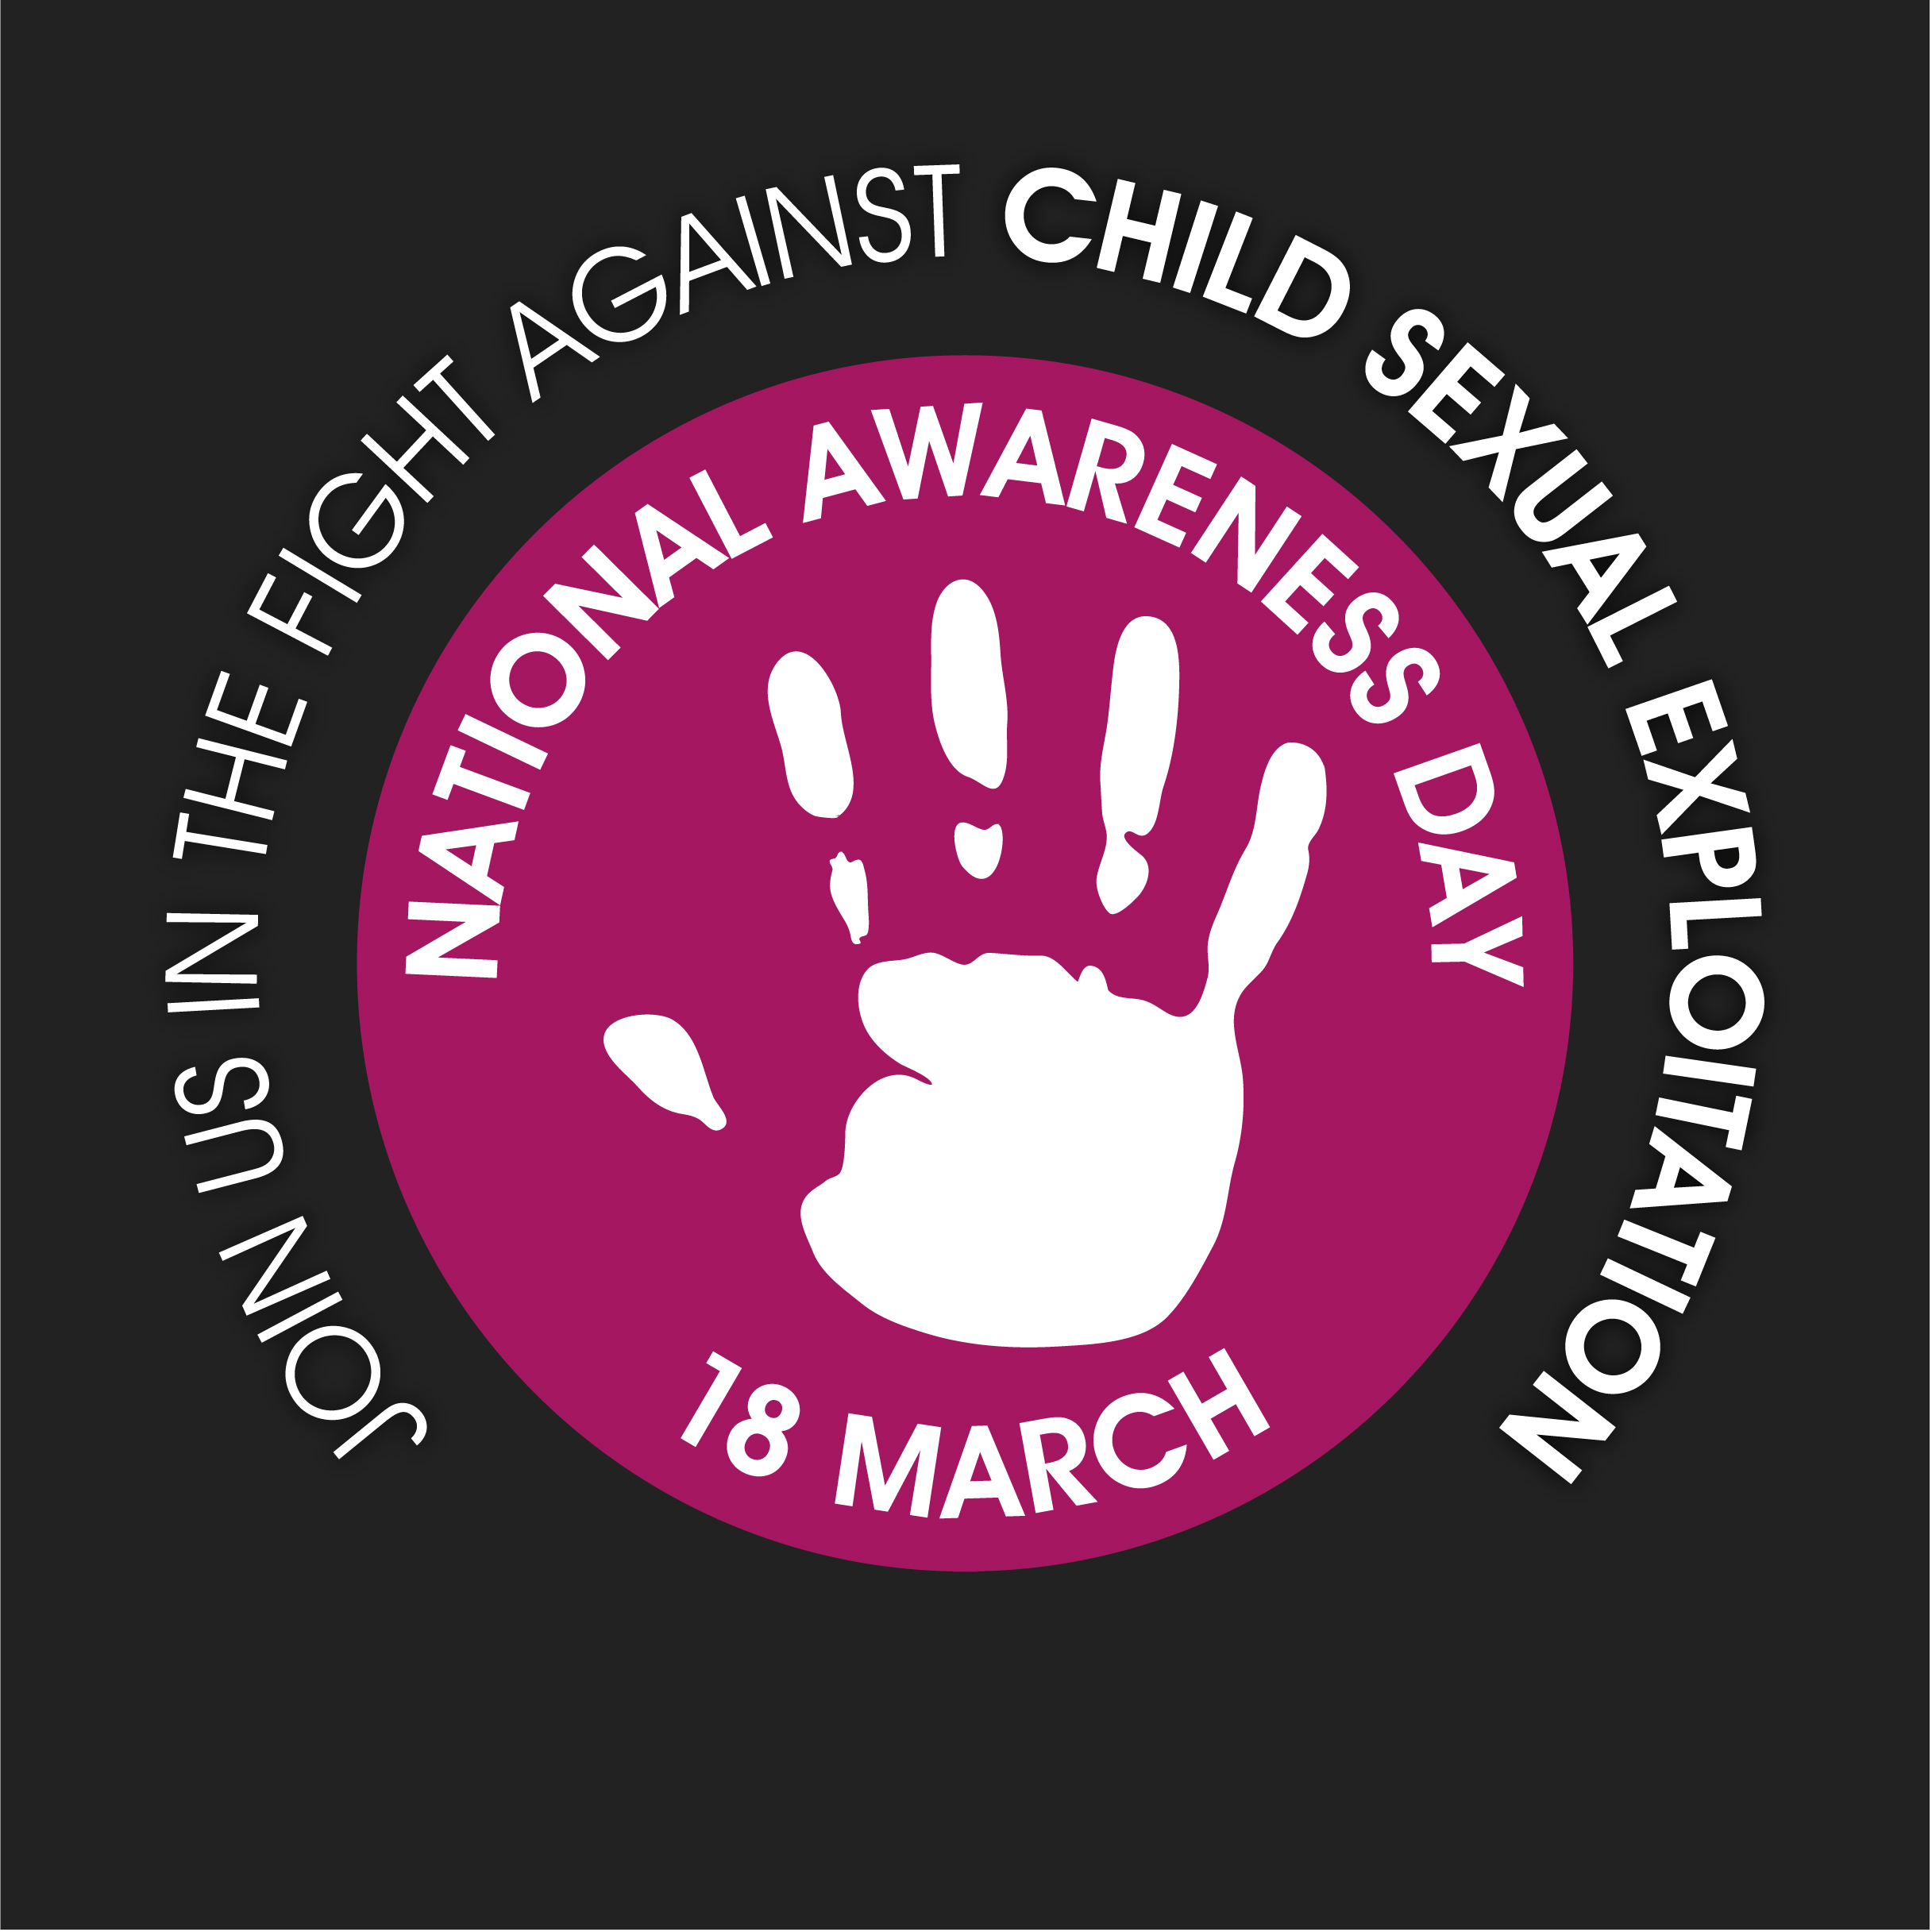 National Child Sexual Exploitation Awareness Day